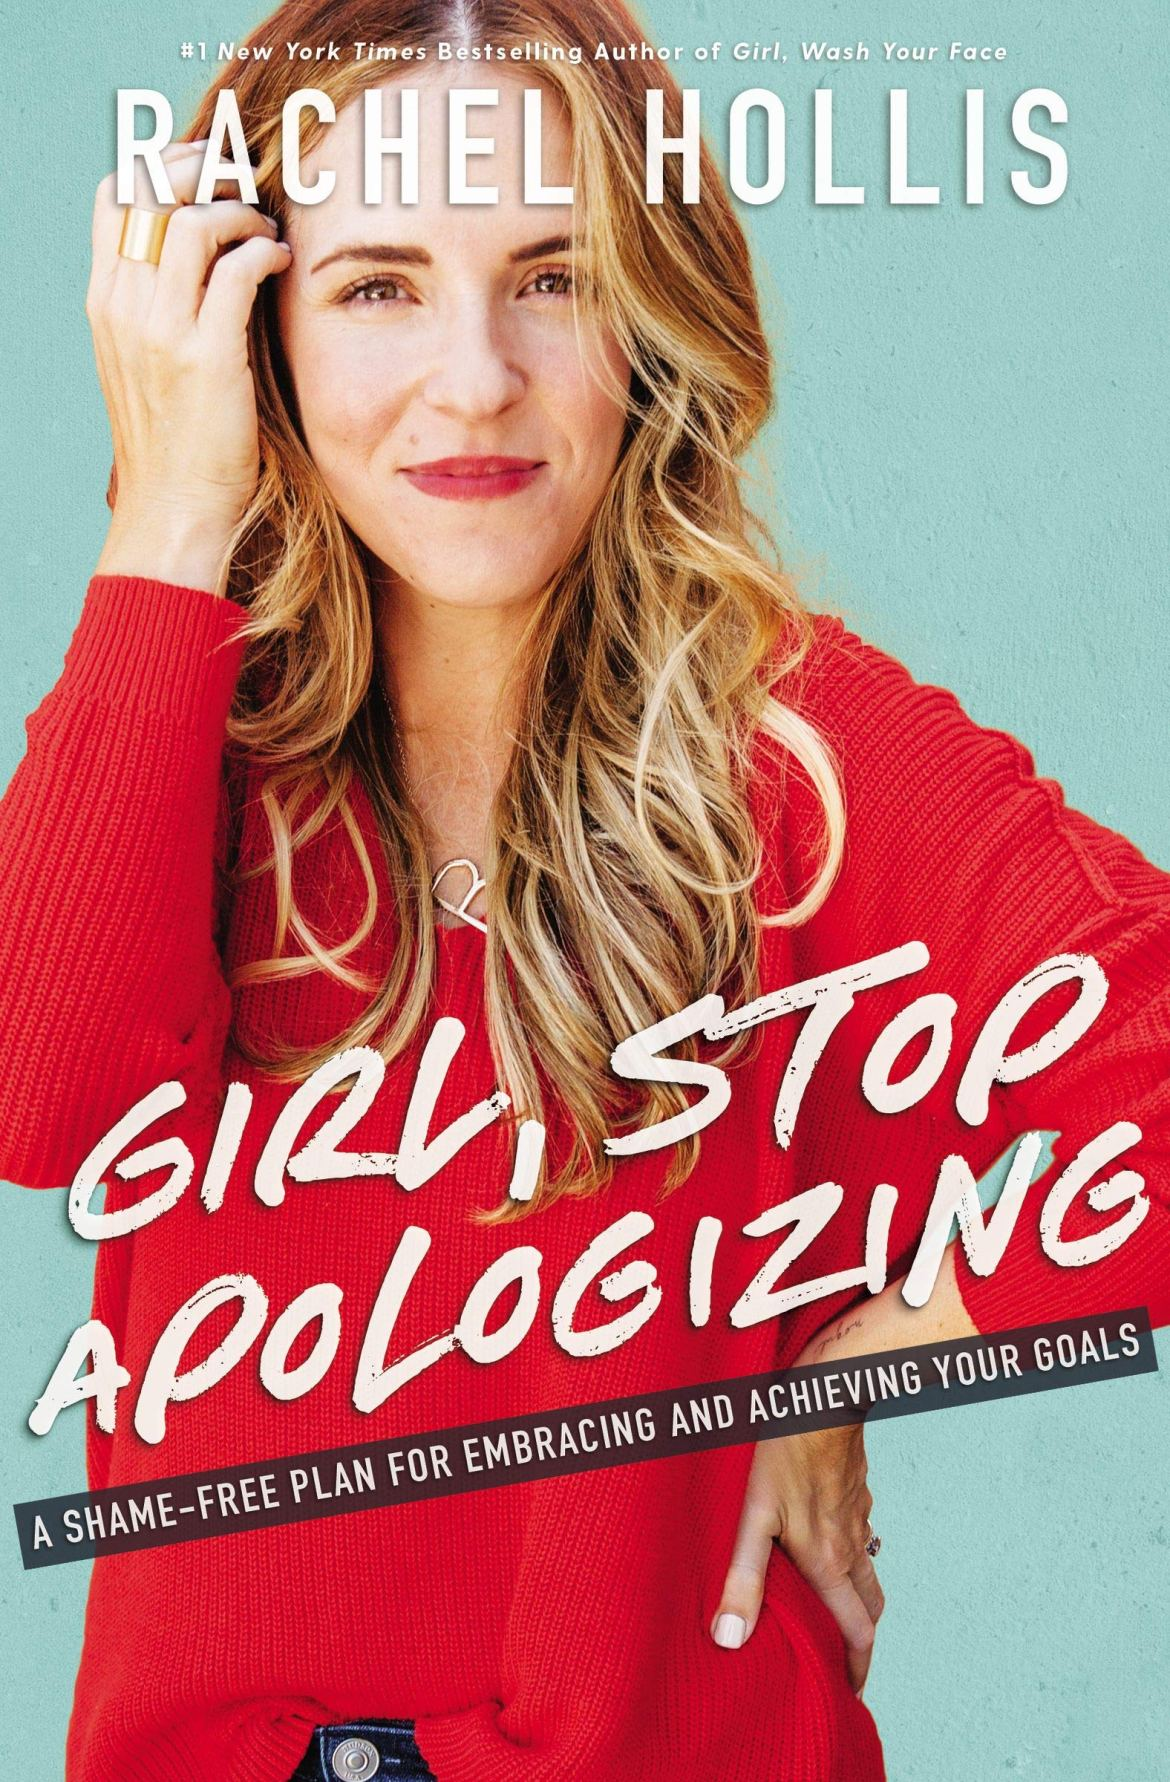 Book Review: Girl, Stop Apologizing